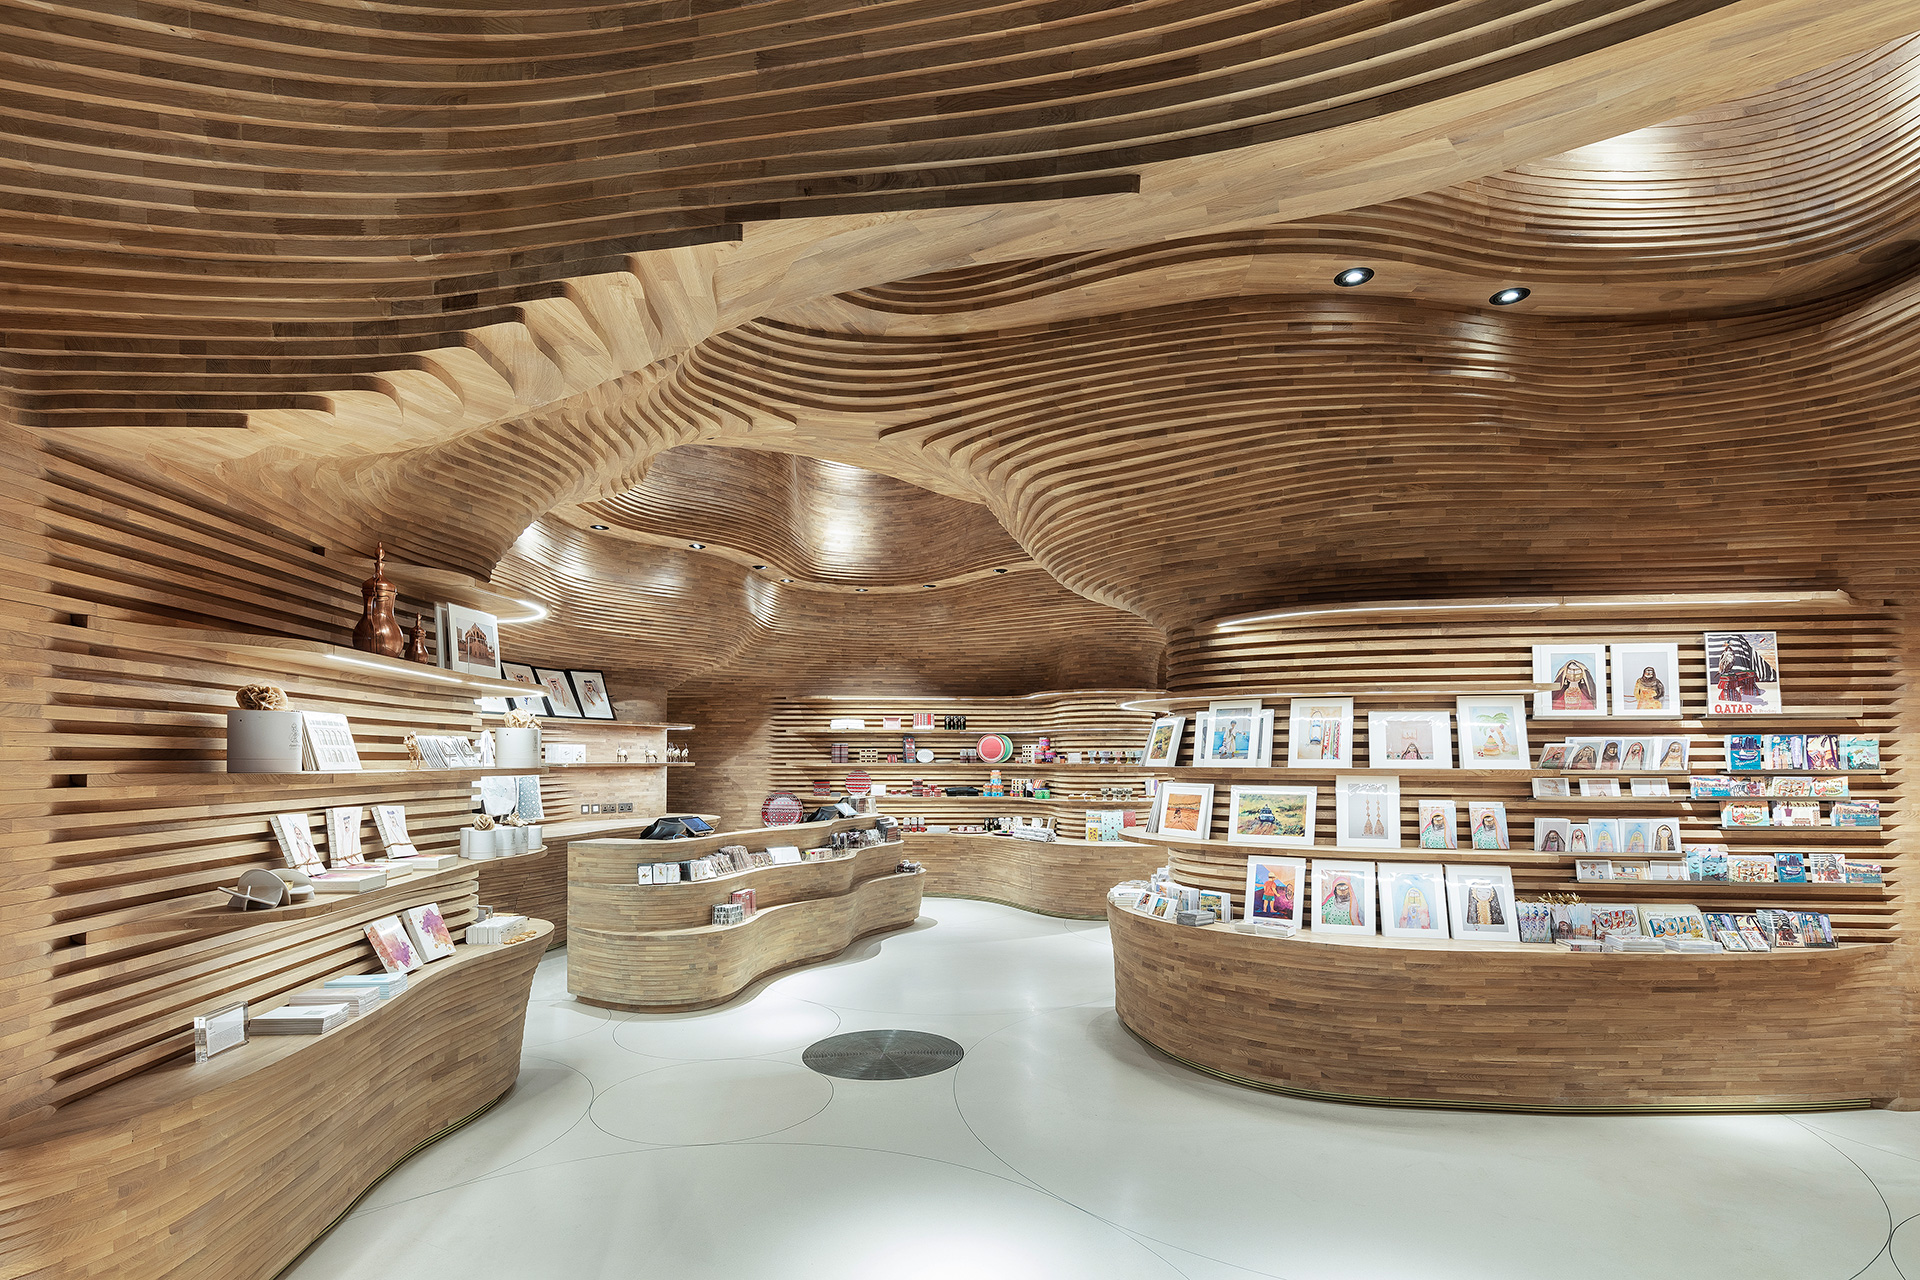 Interiors of the gift shop inspired from the structure of the caves | Qatar Museum Interiors | Koichi Takada Architects| STIR